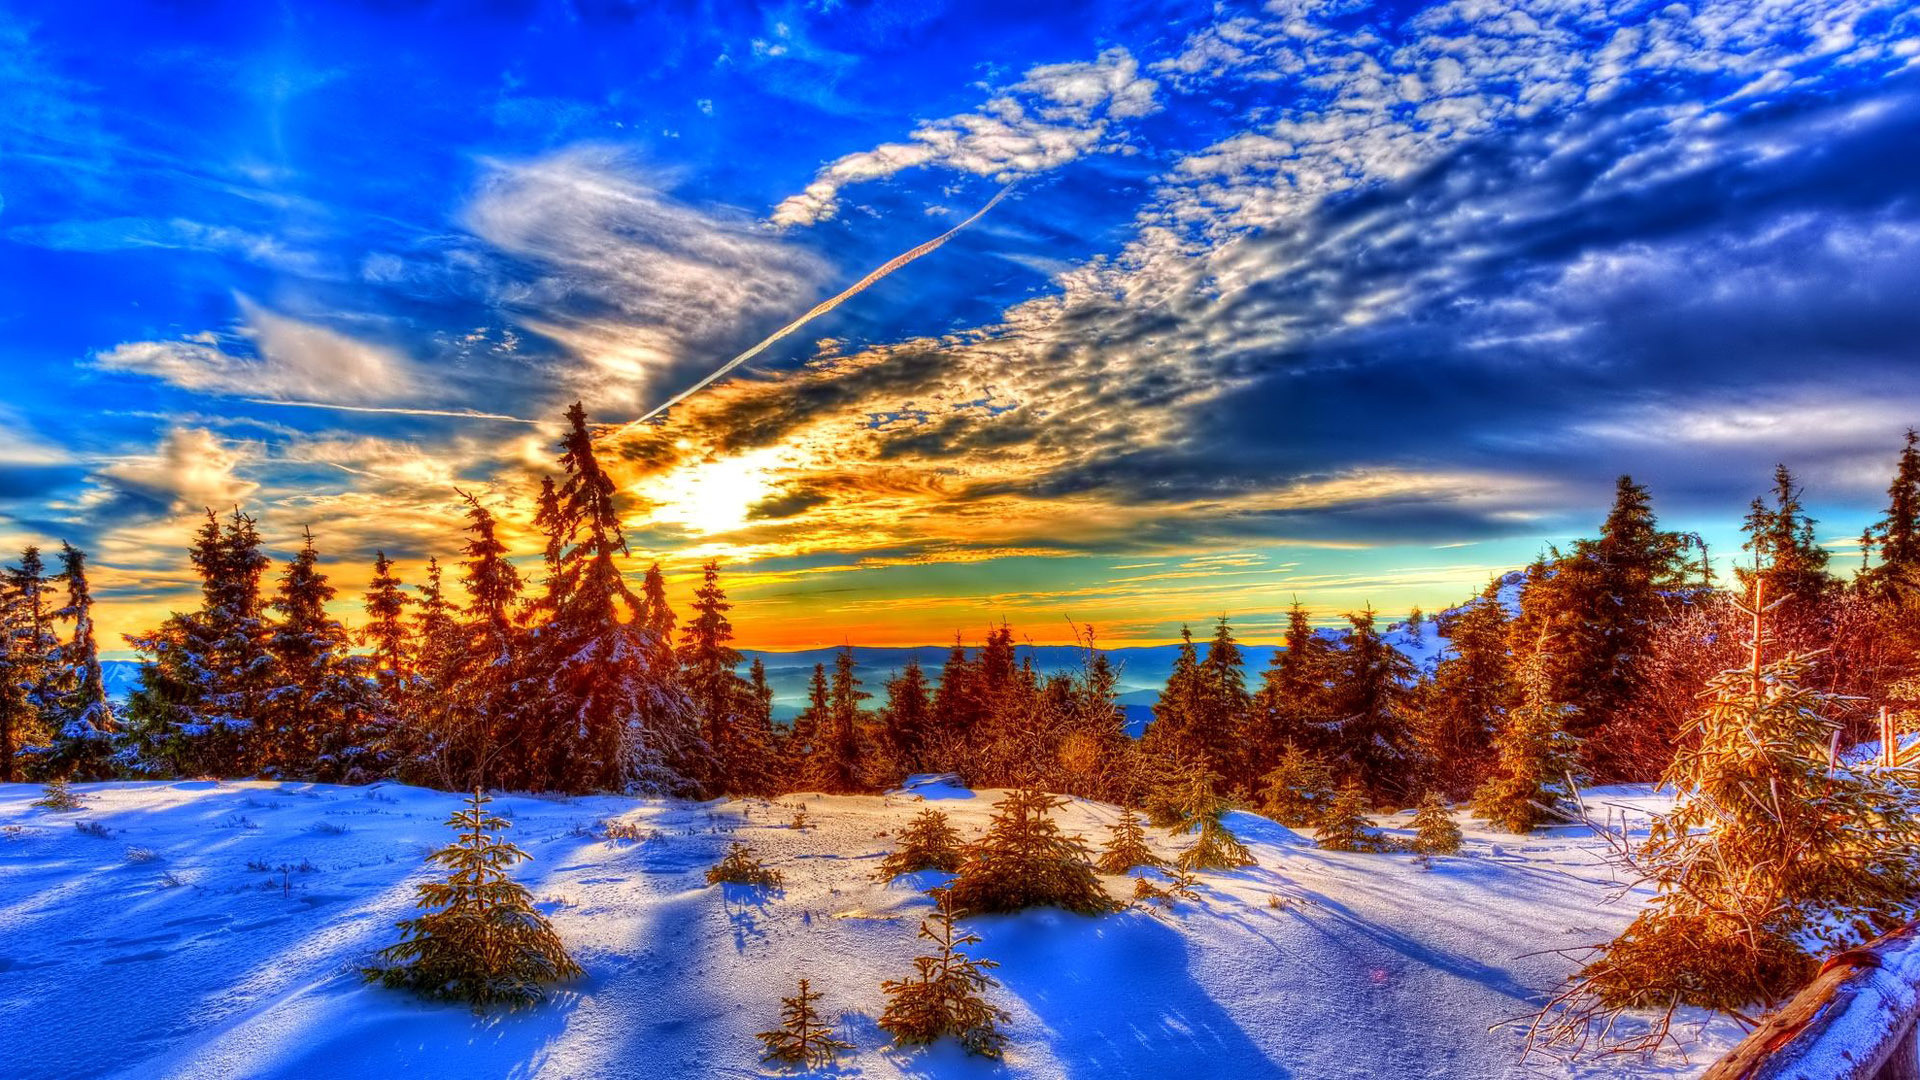 All New Hd Images Free Download Desktop Images Background: Desktop Backgrounds Winter (59+ Images